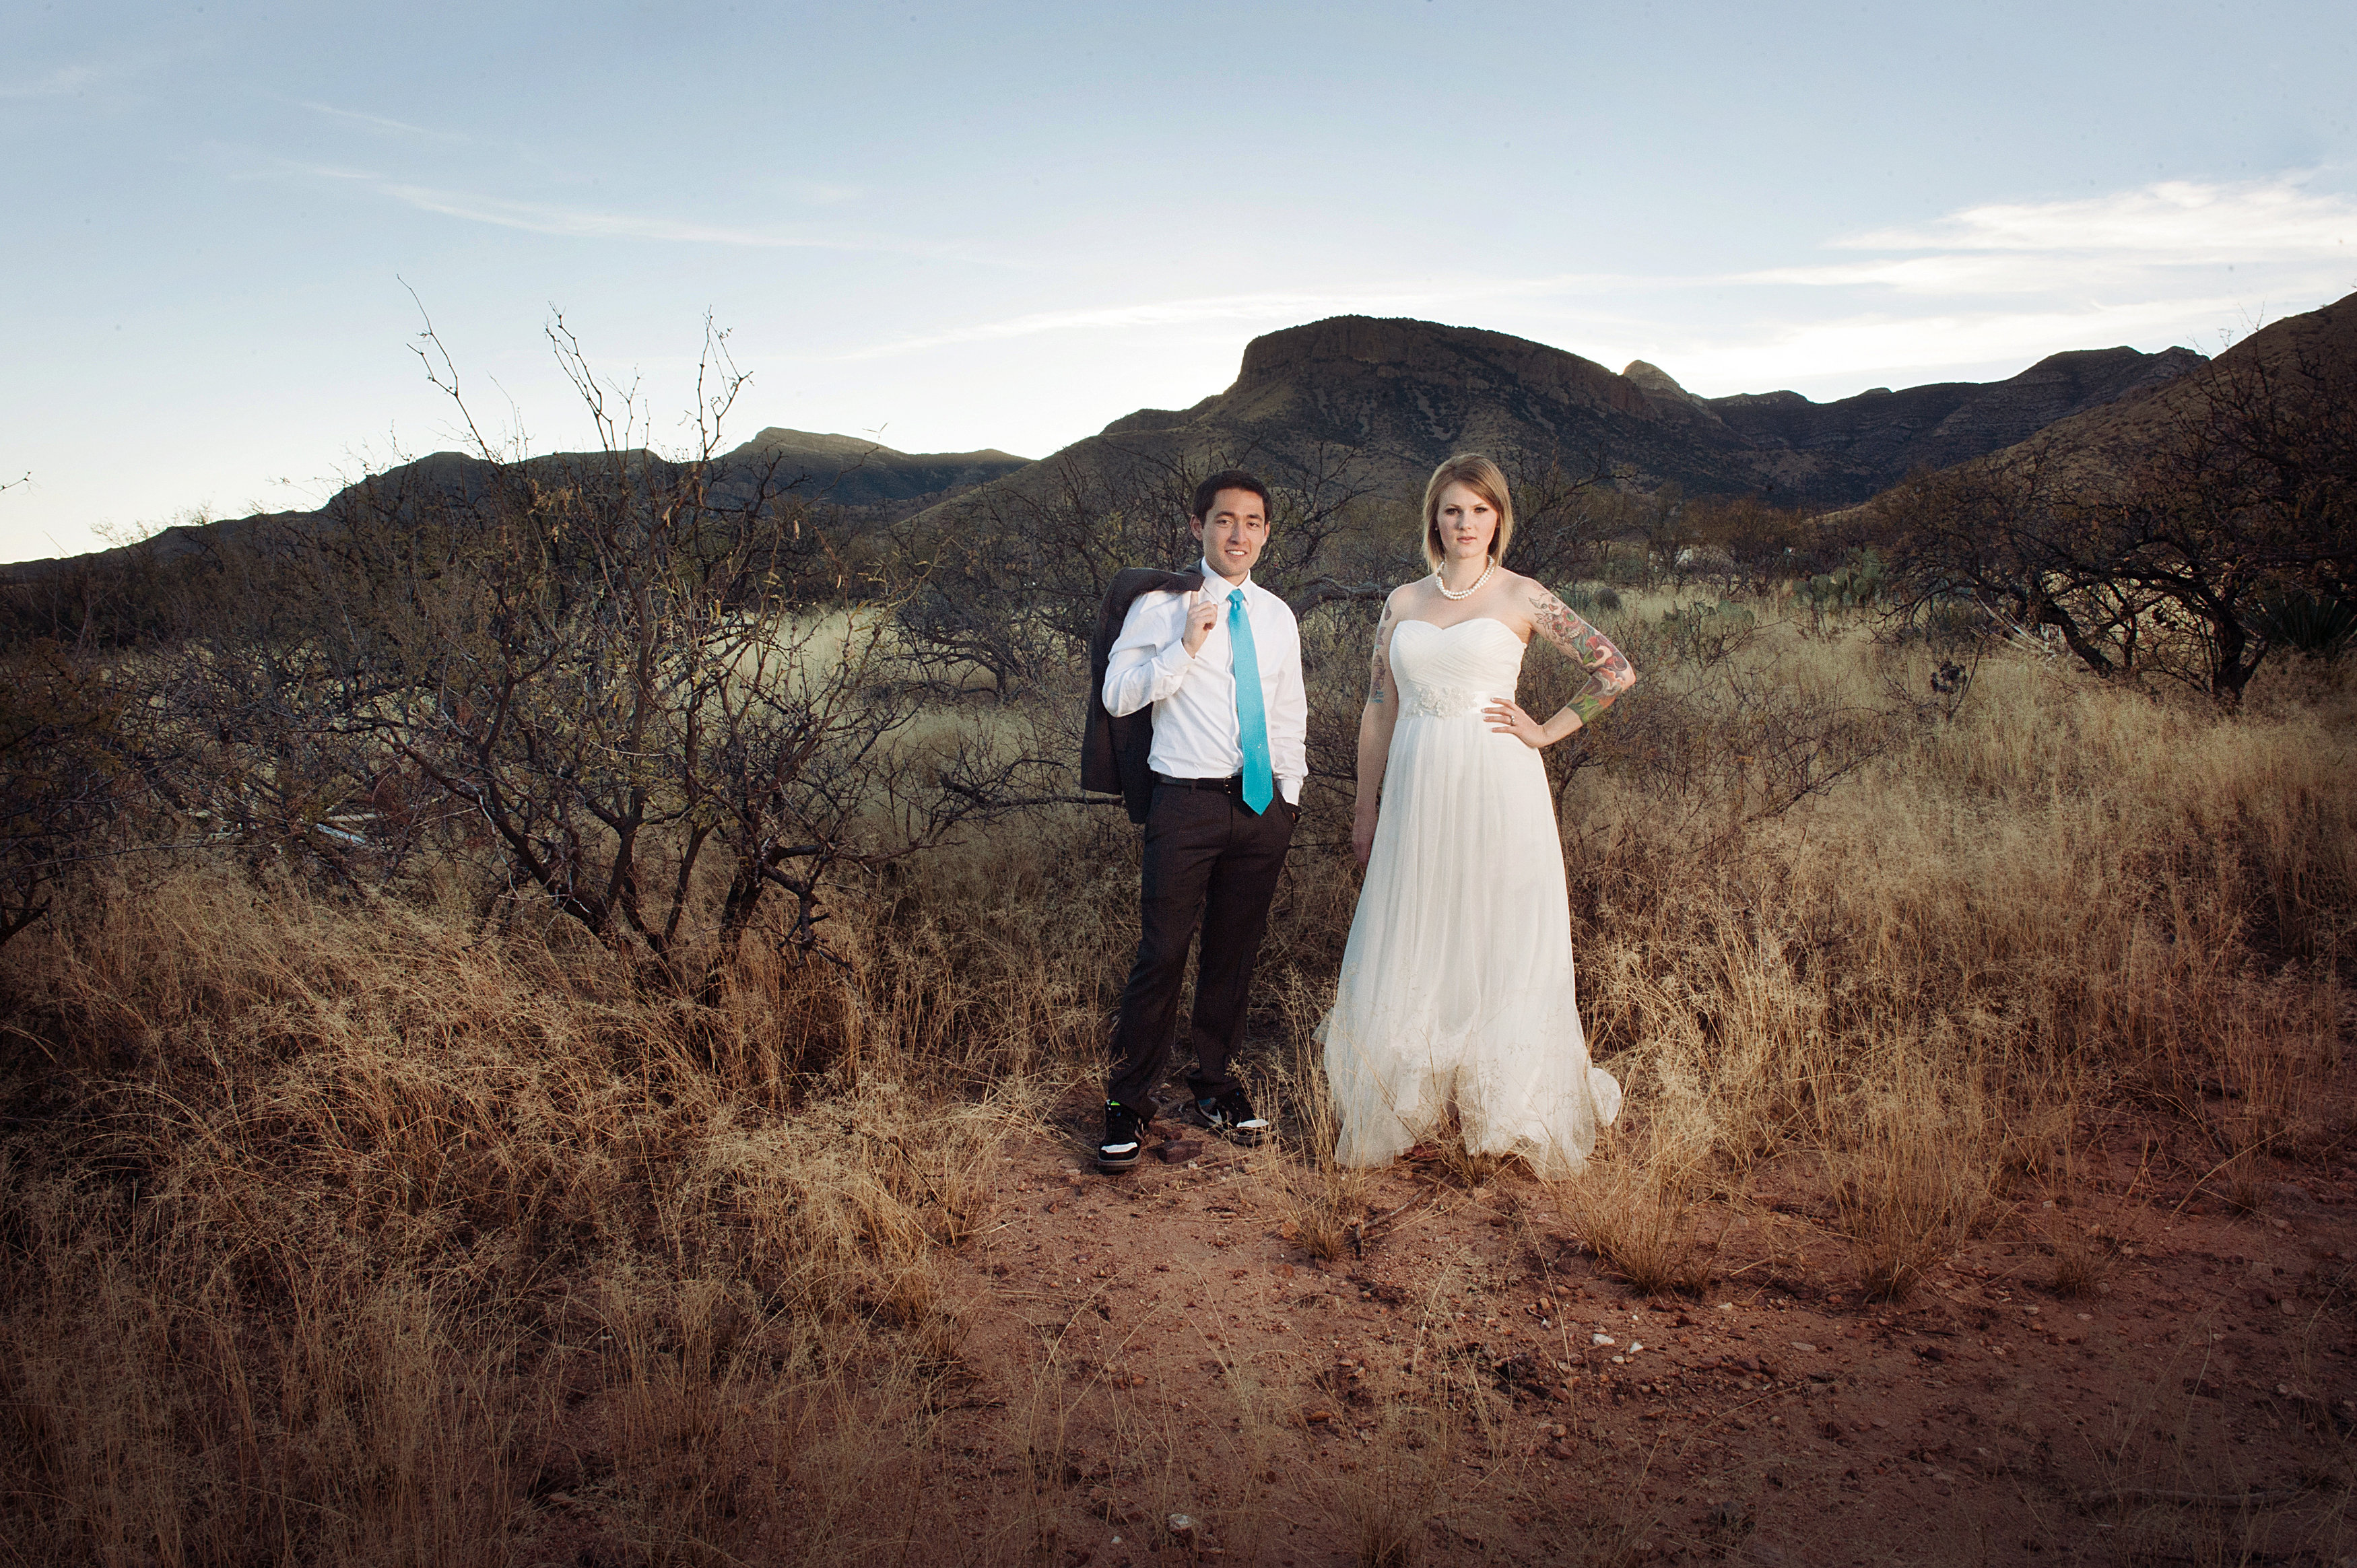 Cassi & Chris | Team Member-Liz | Tucson, AZ